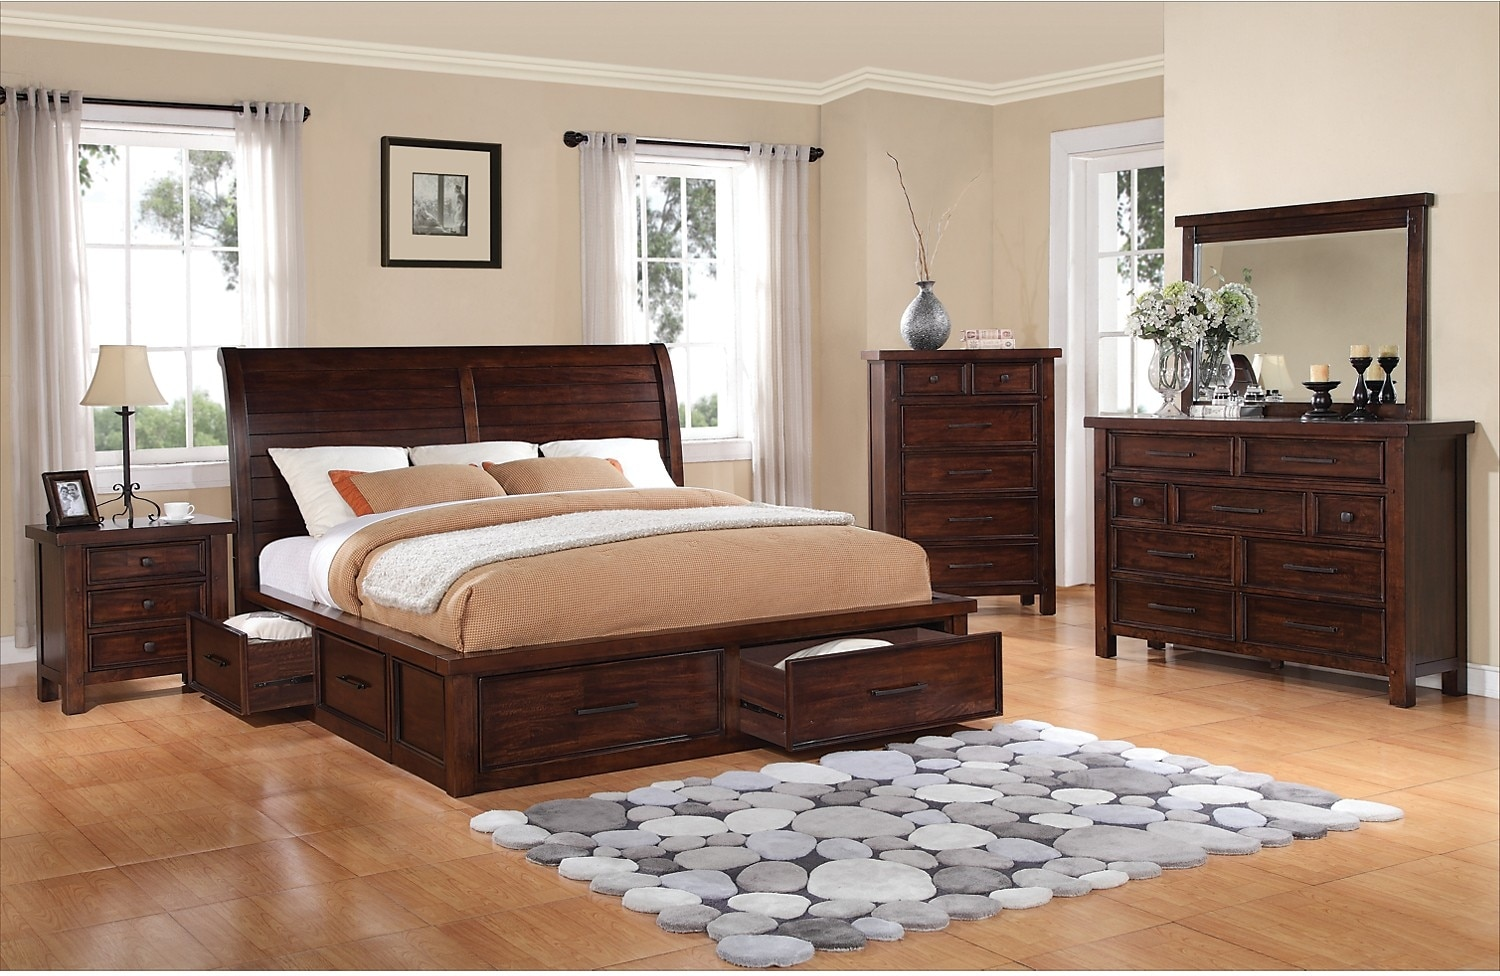 Home Decoration And Interior Design Blog Sonoma 8 Piece King Storage Bedroom Set Dark Brown The